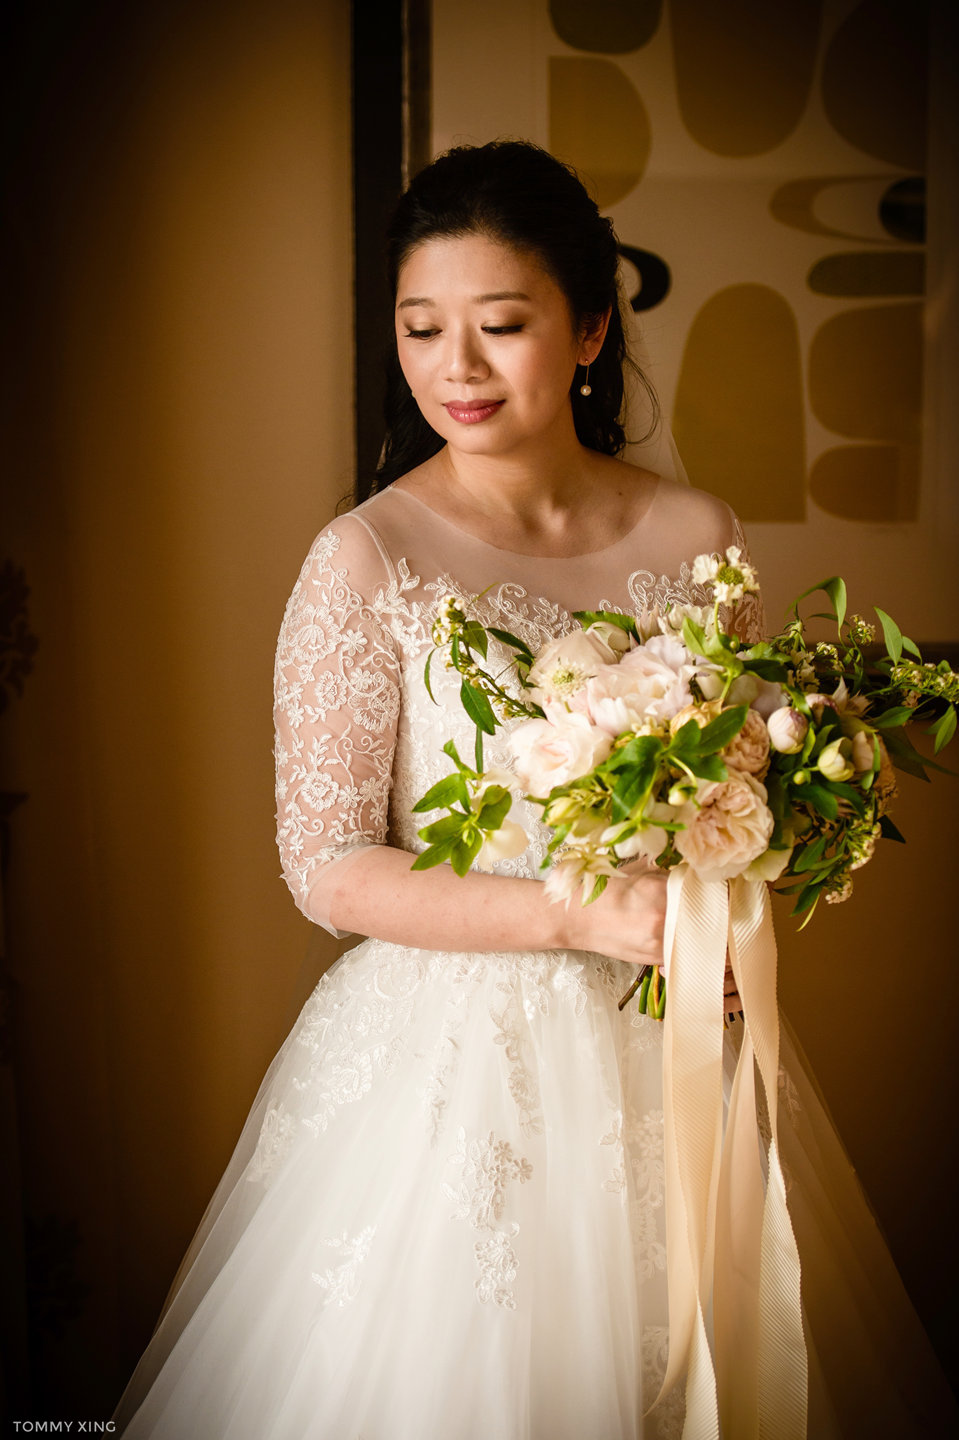 San Francisco Wedding Photography Valley Presbyterian Church WEDDING Tommy Xing Photography 洛杉矶旧金山婚礼婚纱照摄影师031.jpg